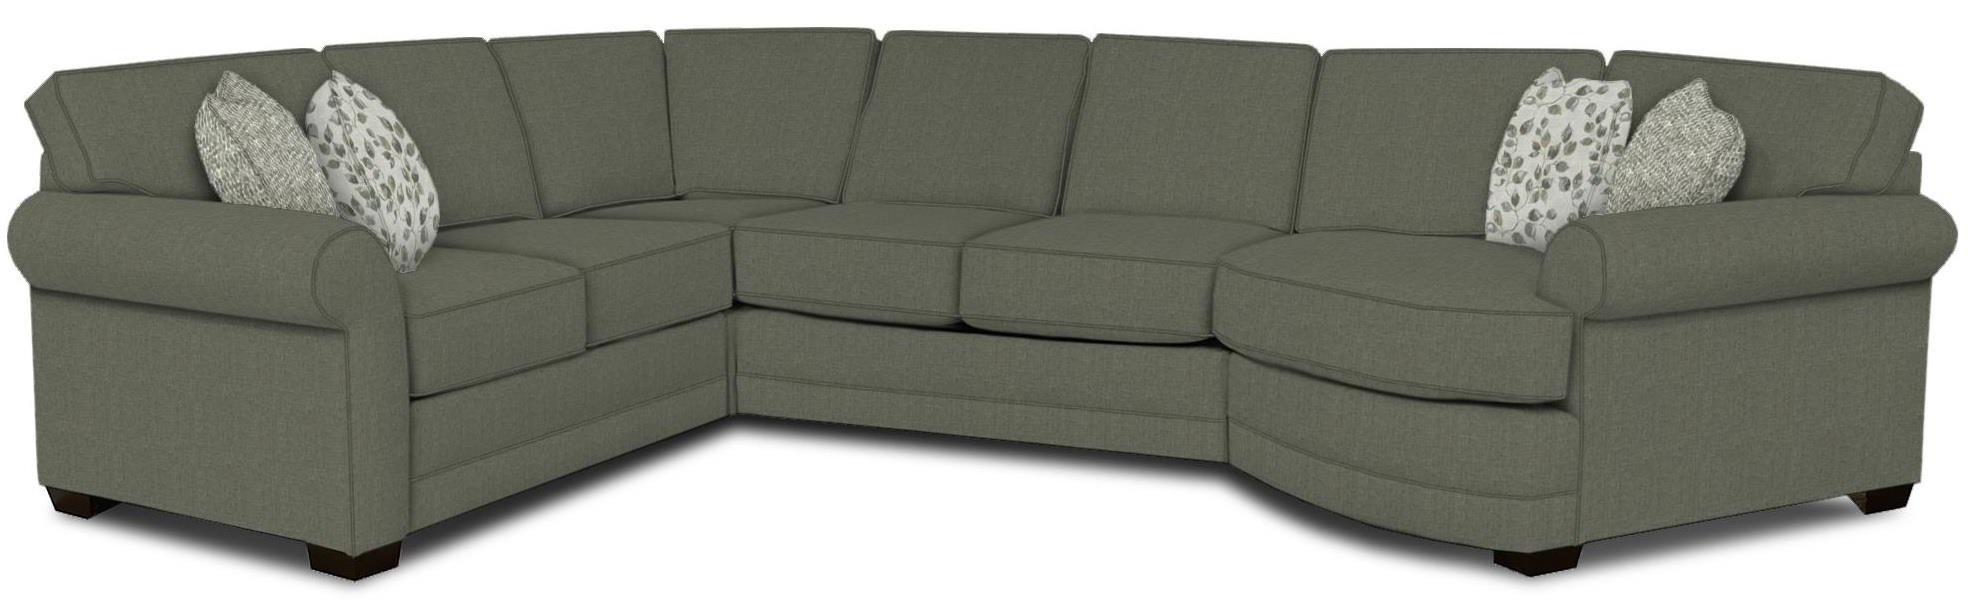 Delicieux England The A SeriesAdele Sectional ...